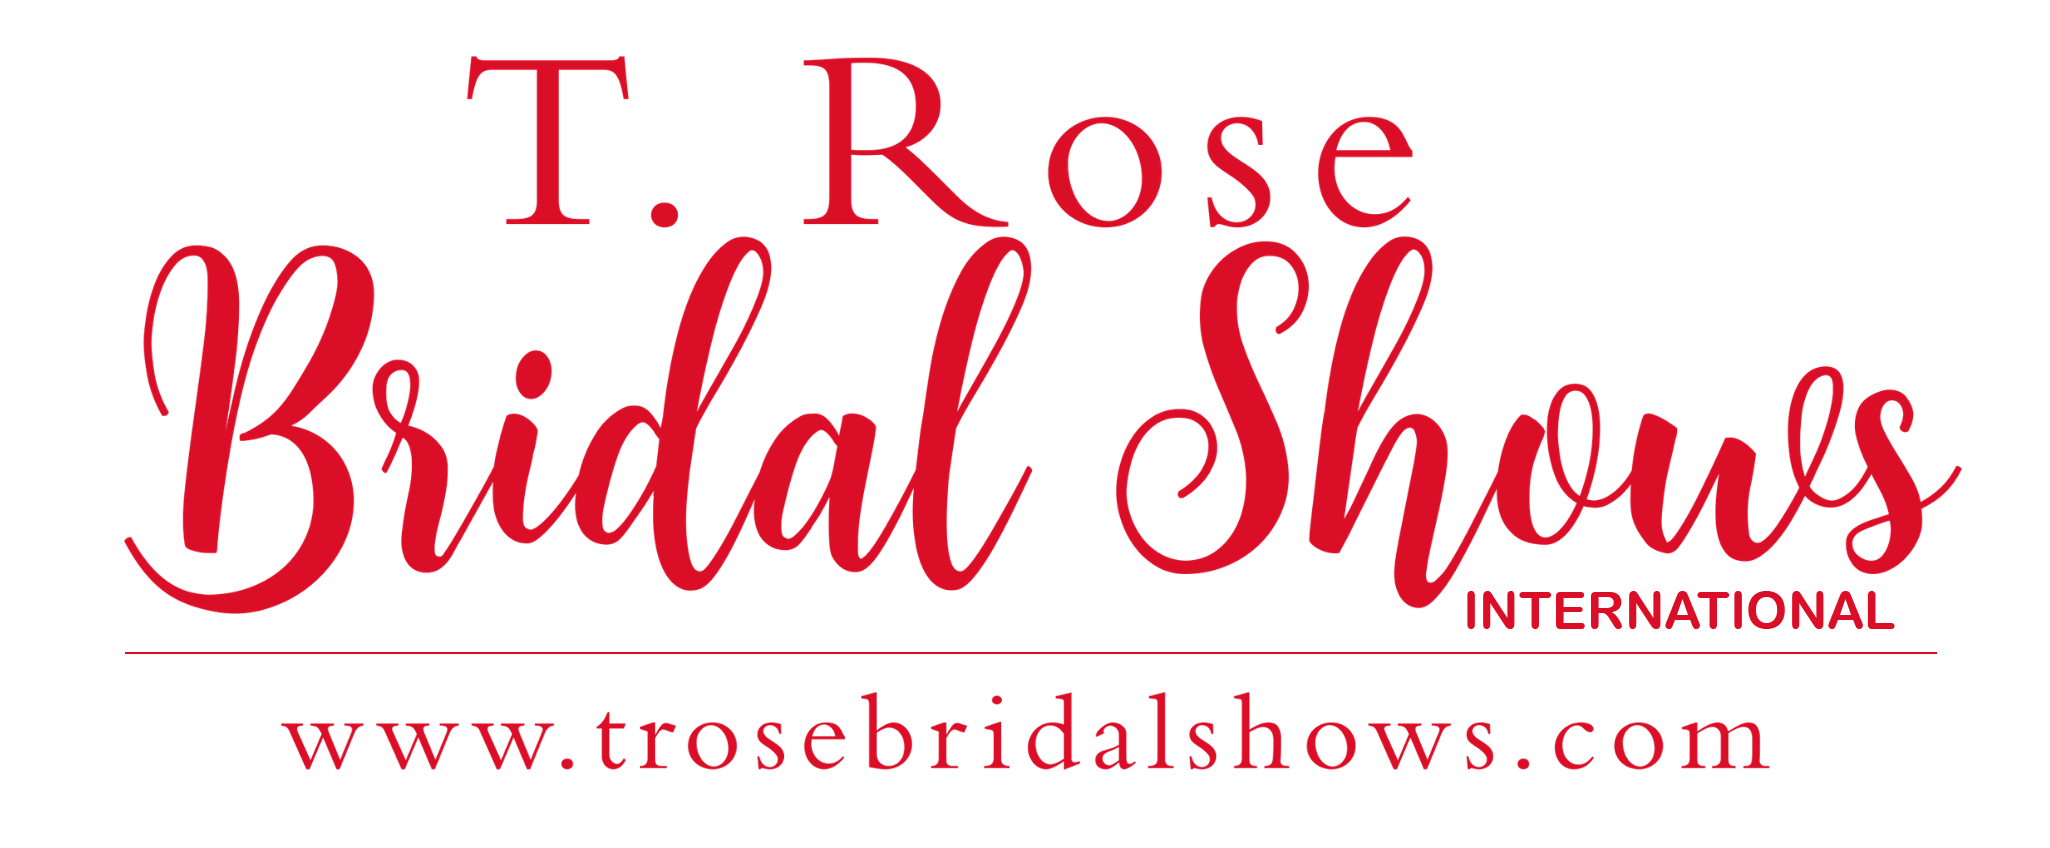 T Rose International Bridal Shows